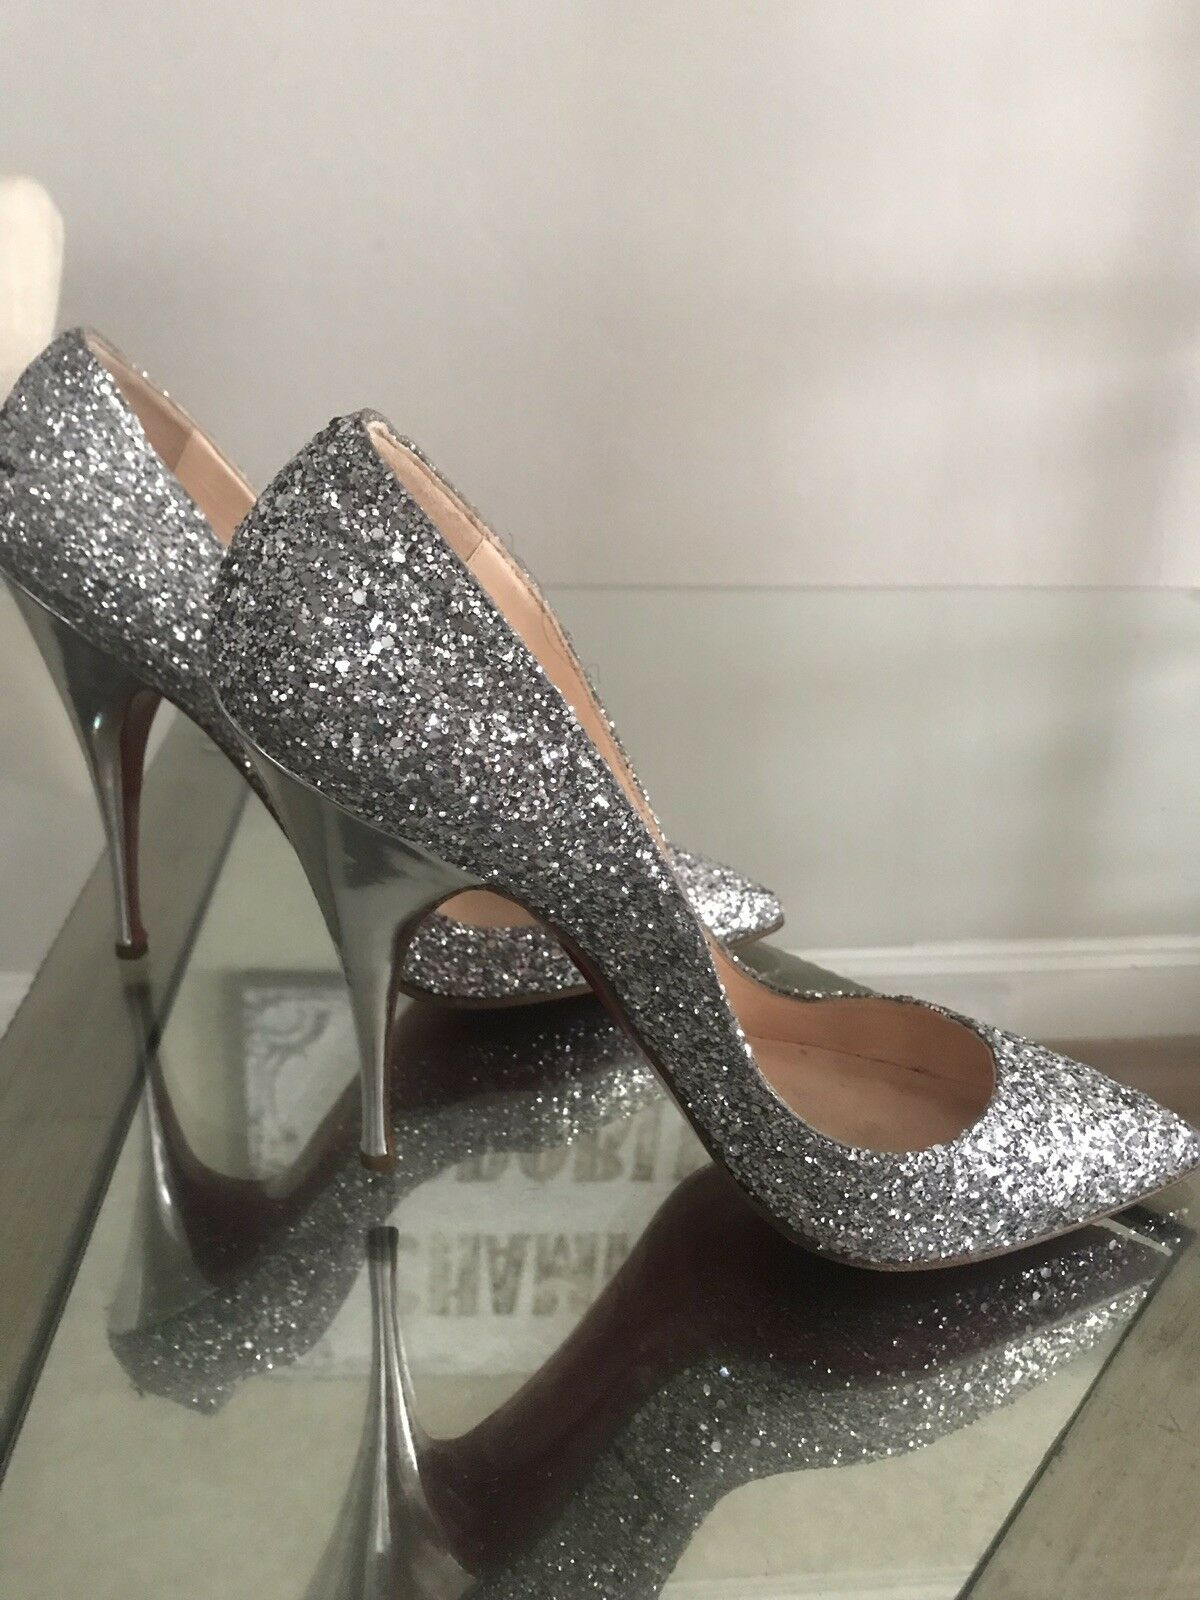 Christian Louboutin Pigalle 120 Glitter Size 40 shoes Pumps Limited Edition